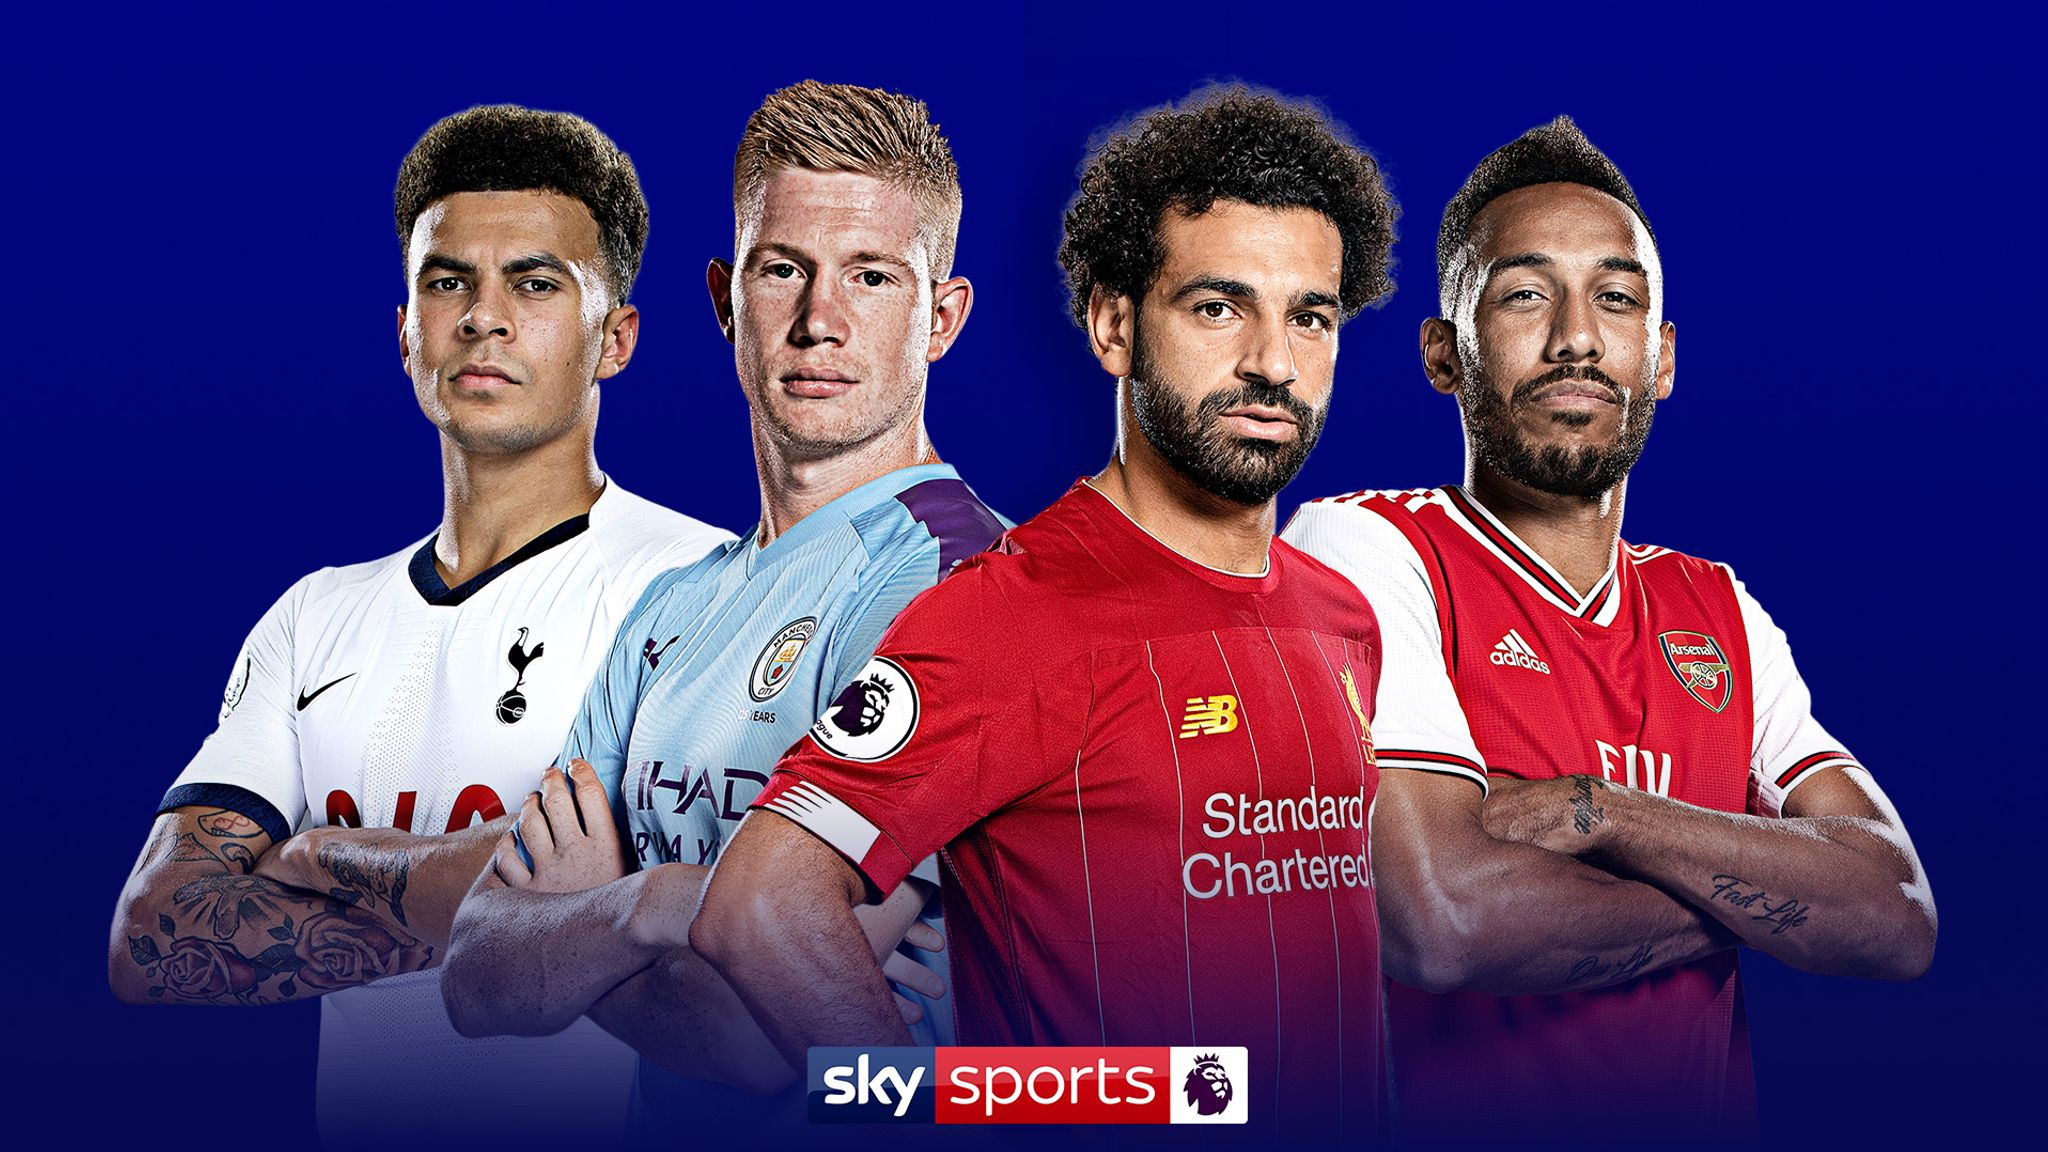 watch liverpool vs arsenal live now free